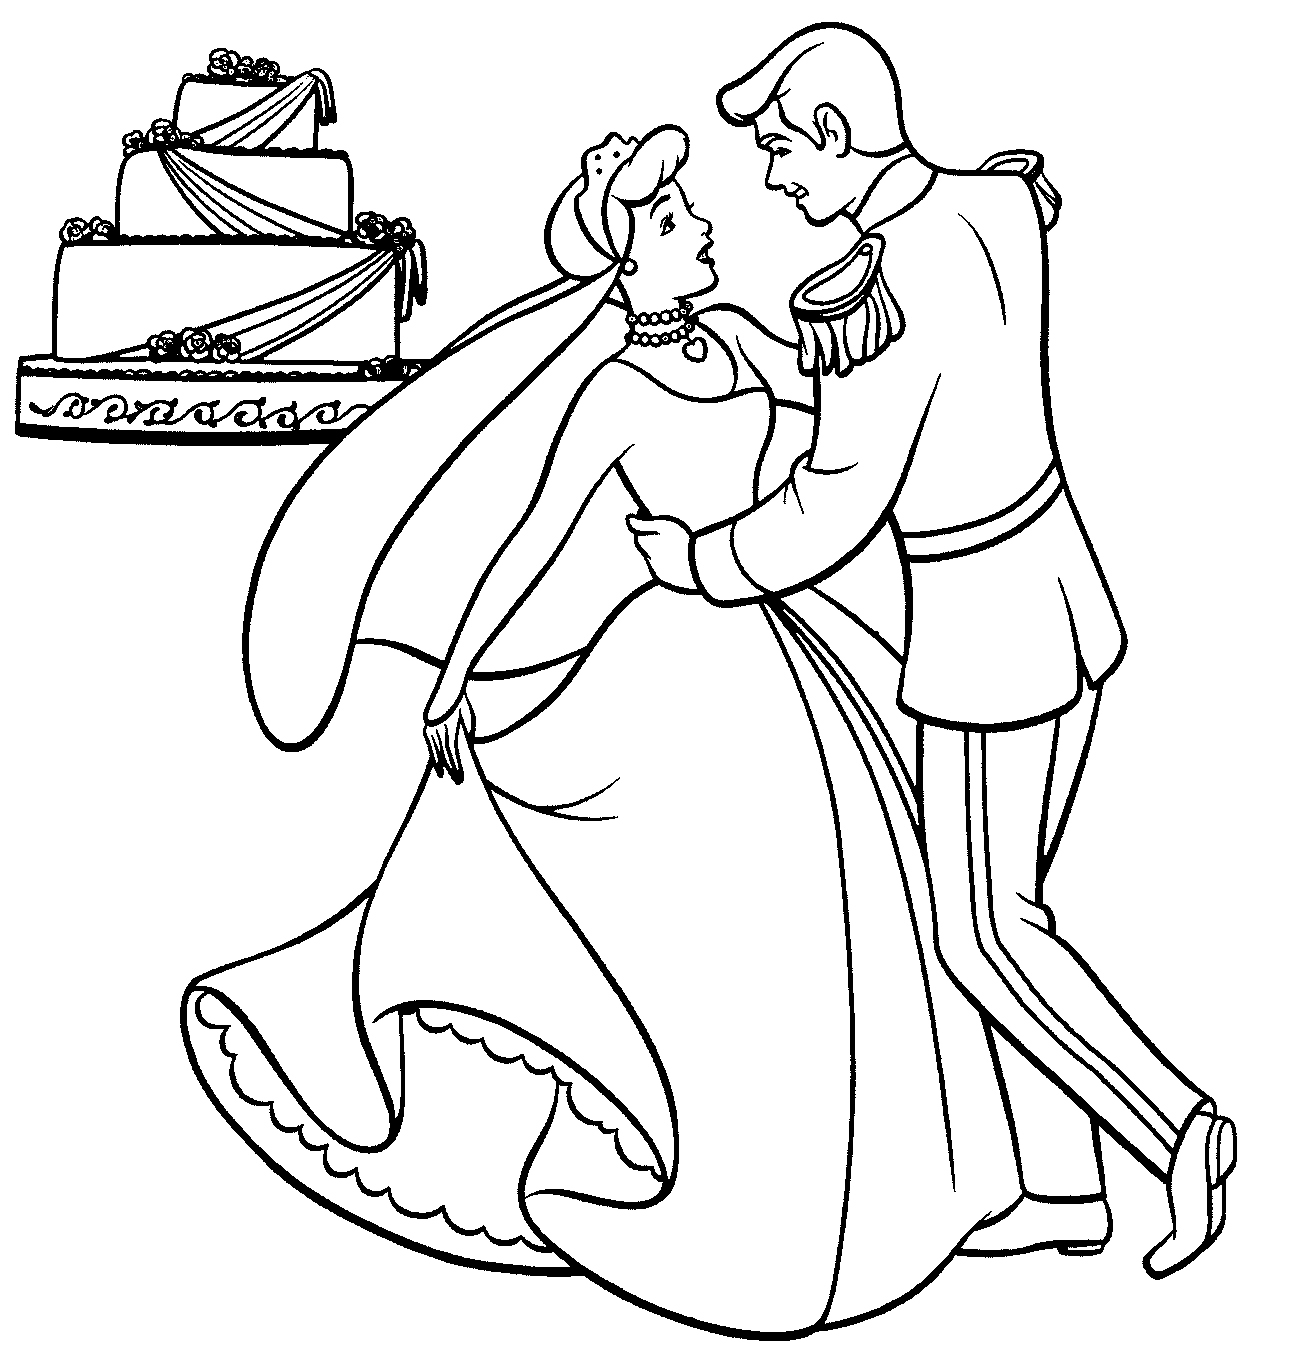 freewedding coloring pages - photo#30